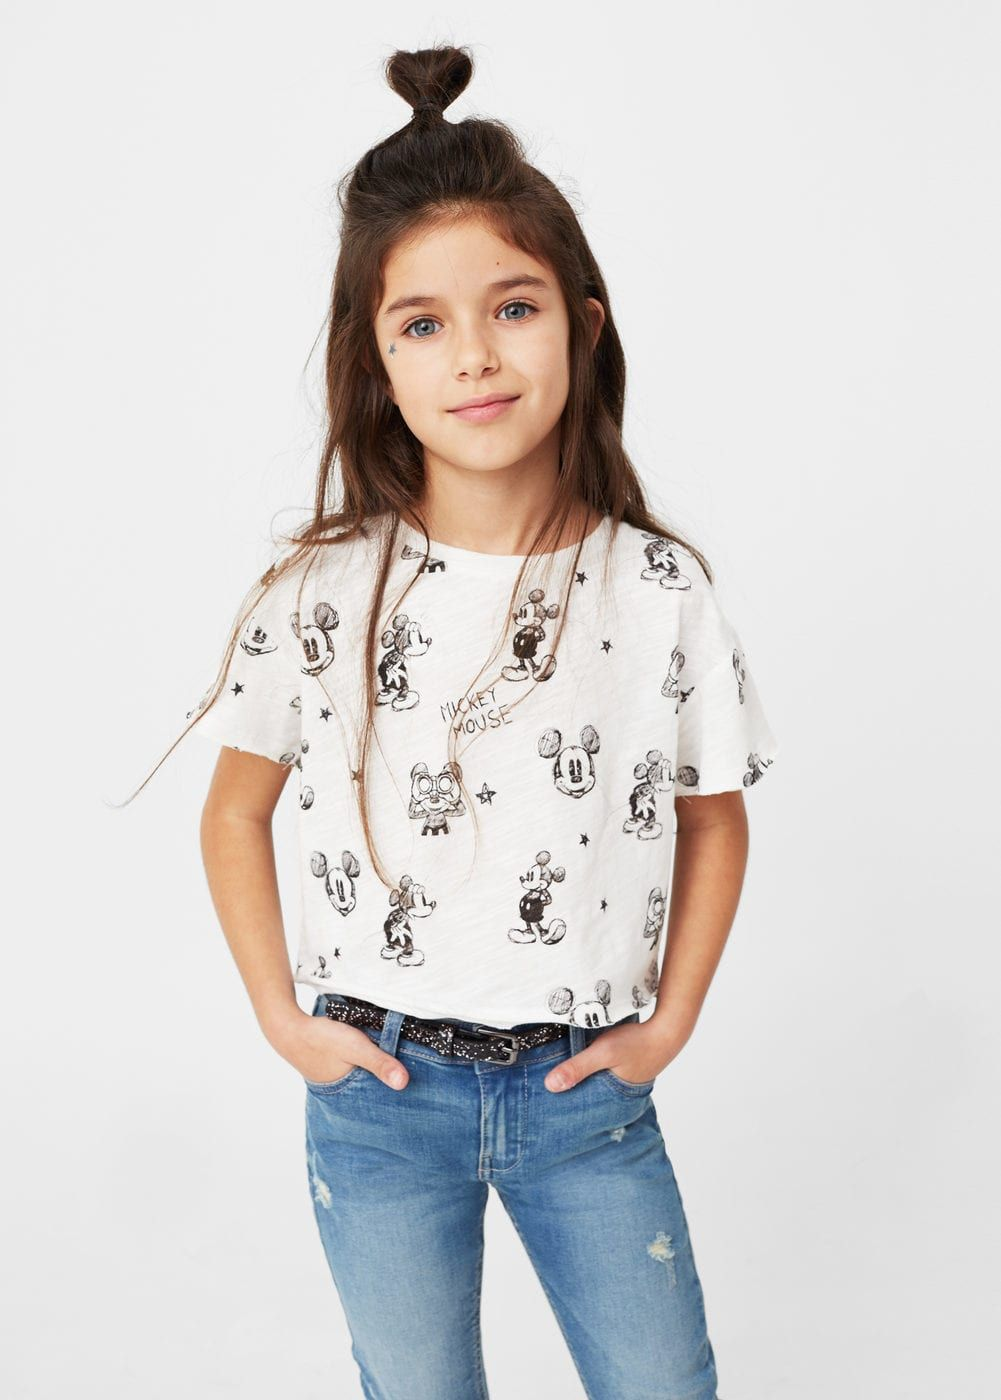 9903c5052 Mickey mouse t-shirt - Girls in 2019 | Saudi's style | Mickey mouse ...